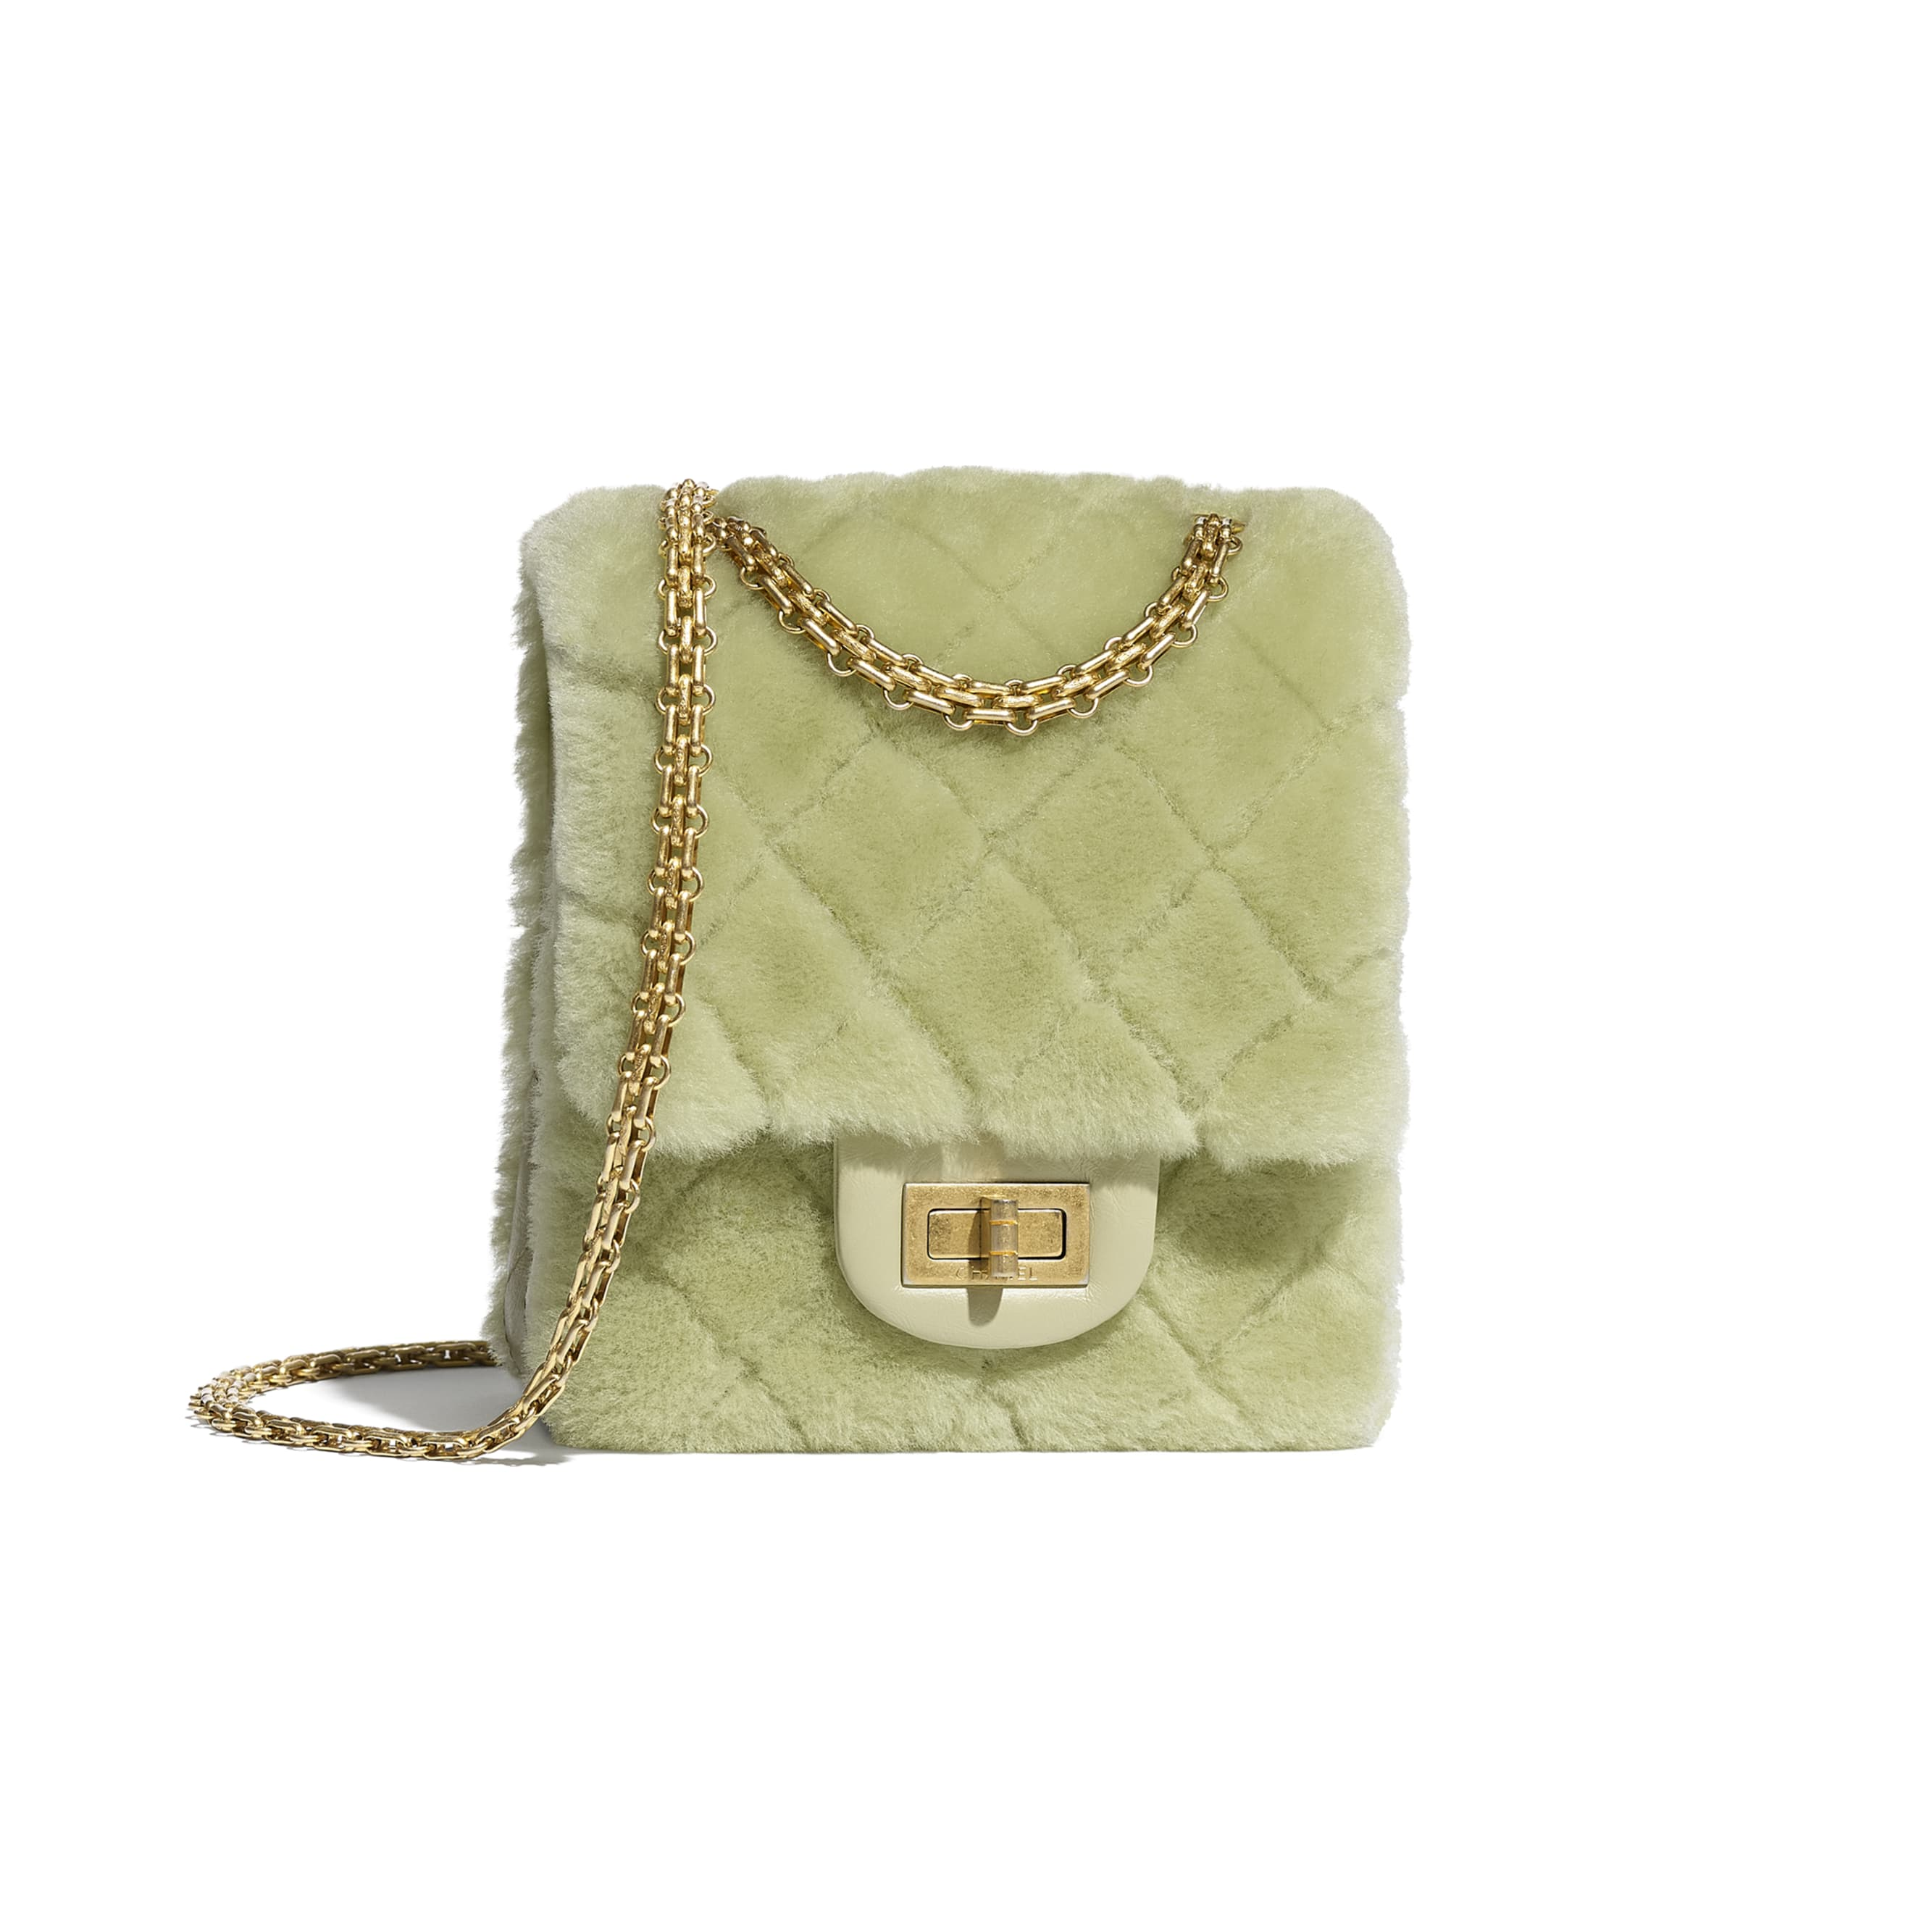 Mini 2.55 Handbag - Green - Shearling Lambskin, Aged Calfskin & Gold-Tone Metal - CHANEL - Default view - see standard sized version